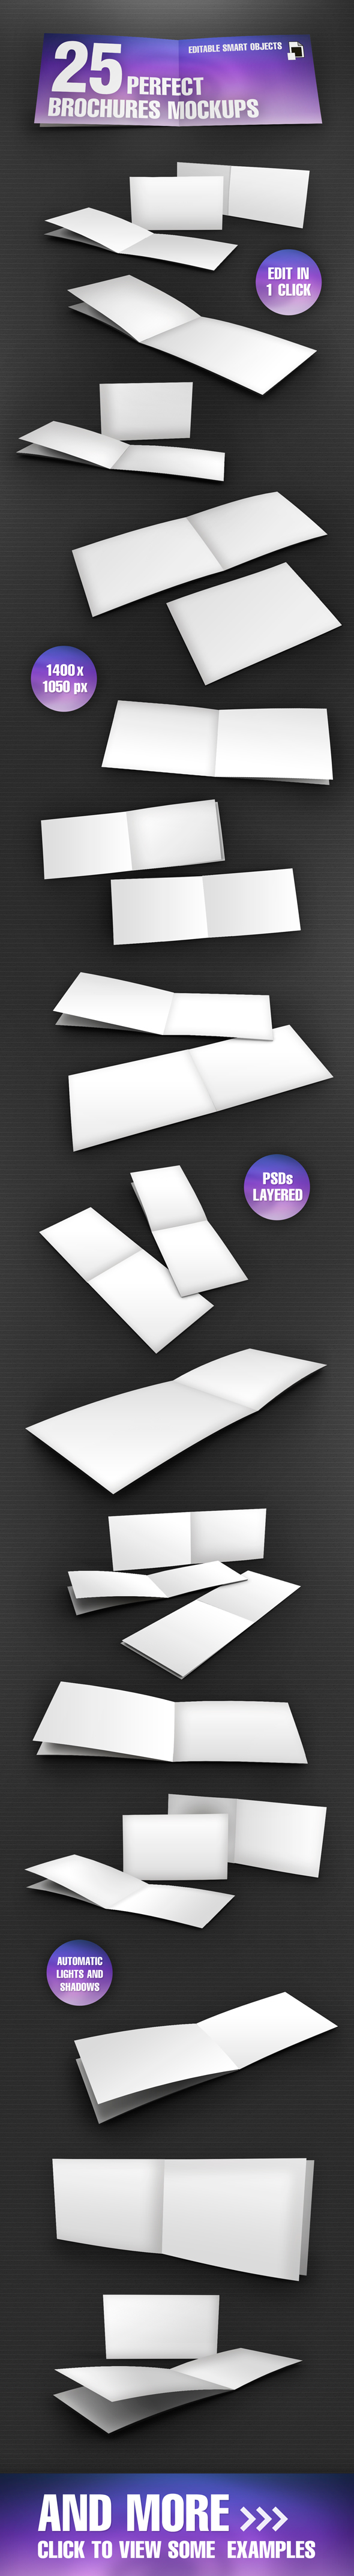 Perfect Realistic Brochures Mock-up Set by Giallo86